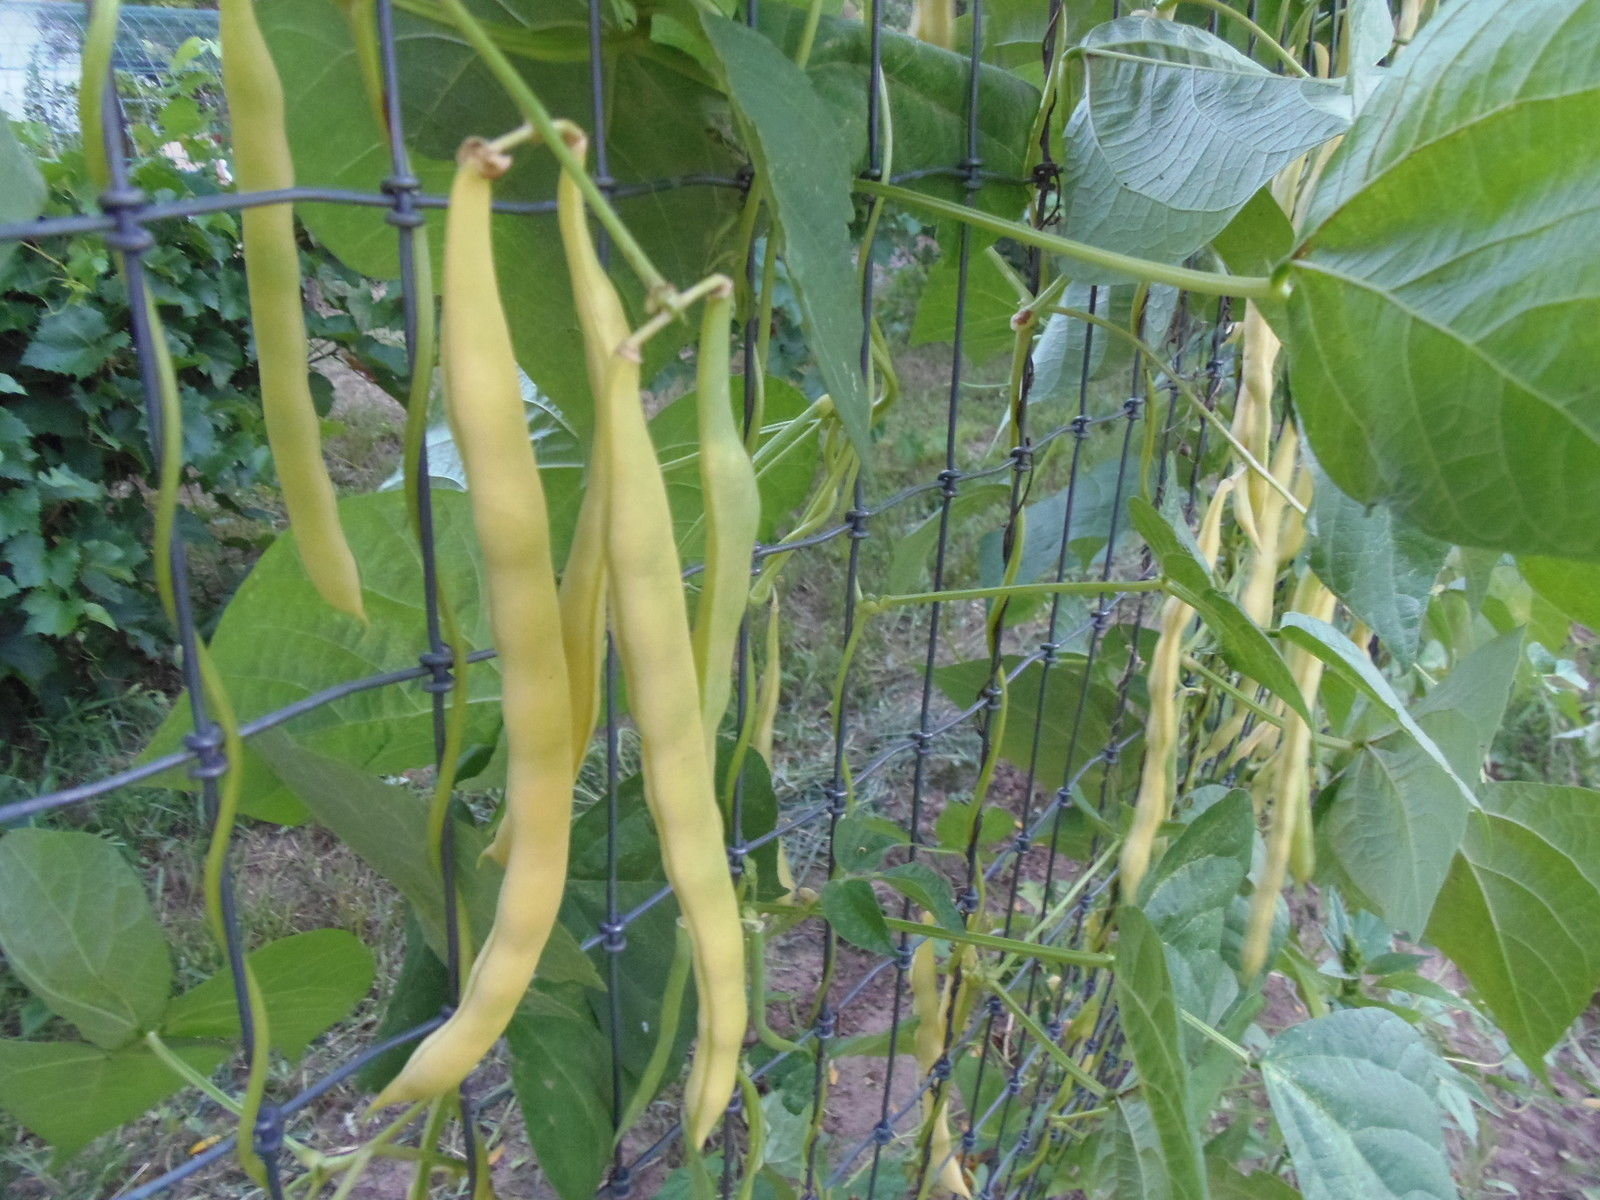 Neckargold pole bean - golden heirloom bean from Germany with great flavor